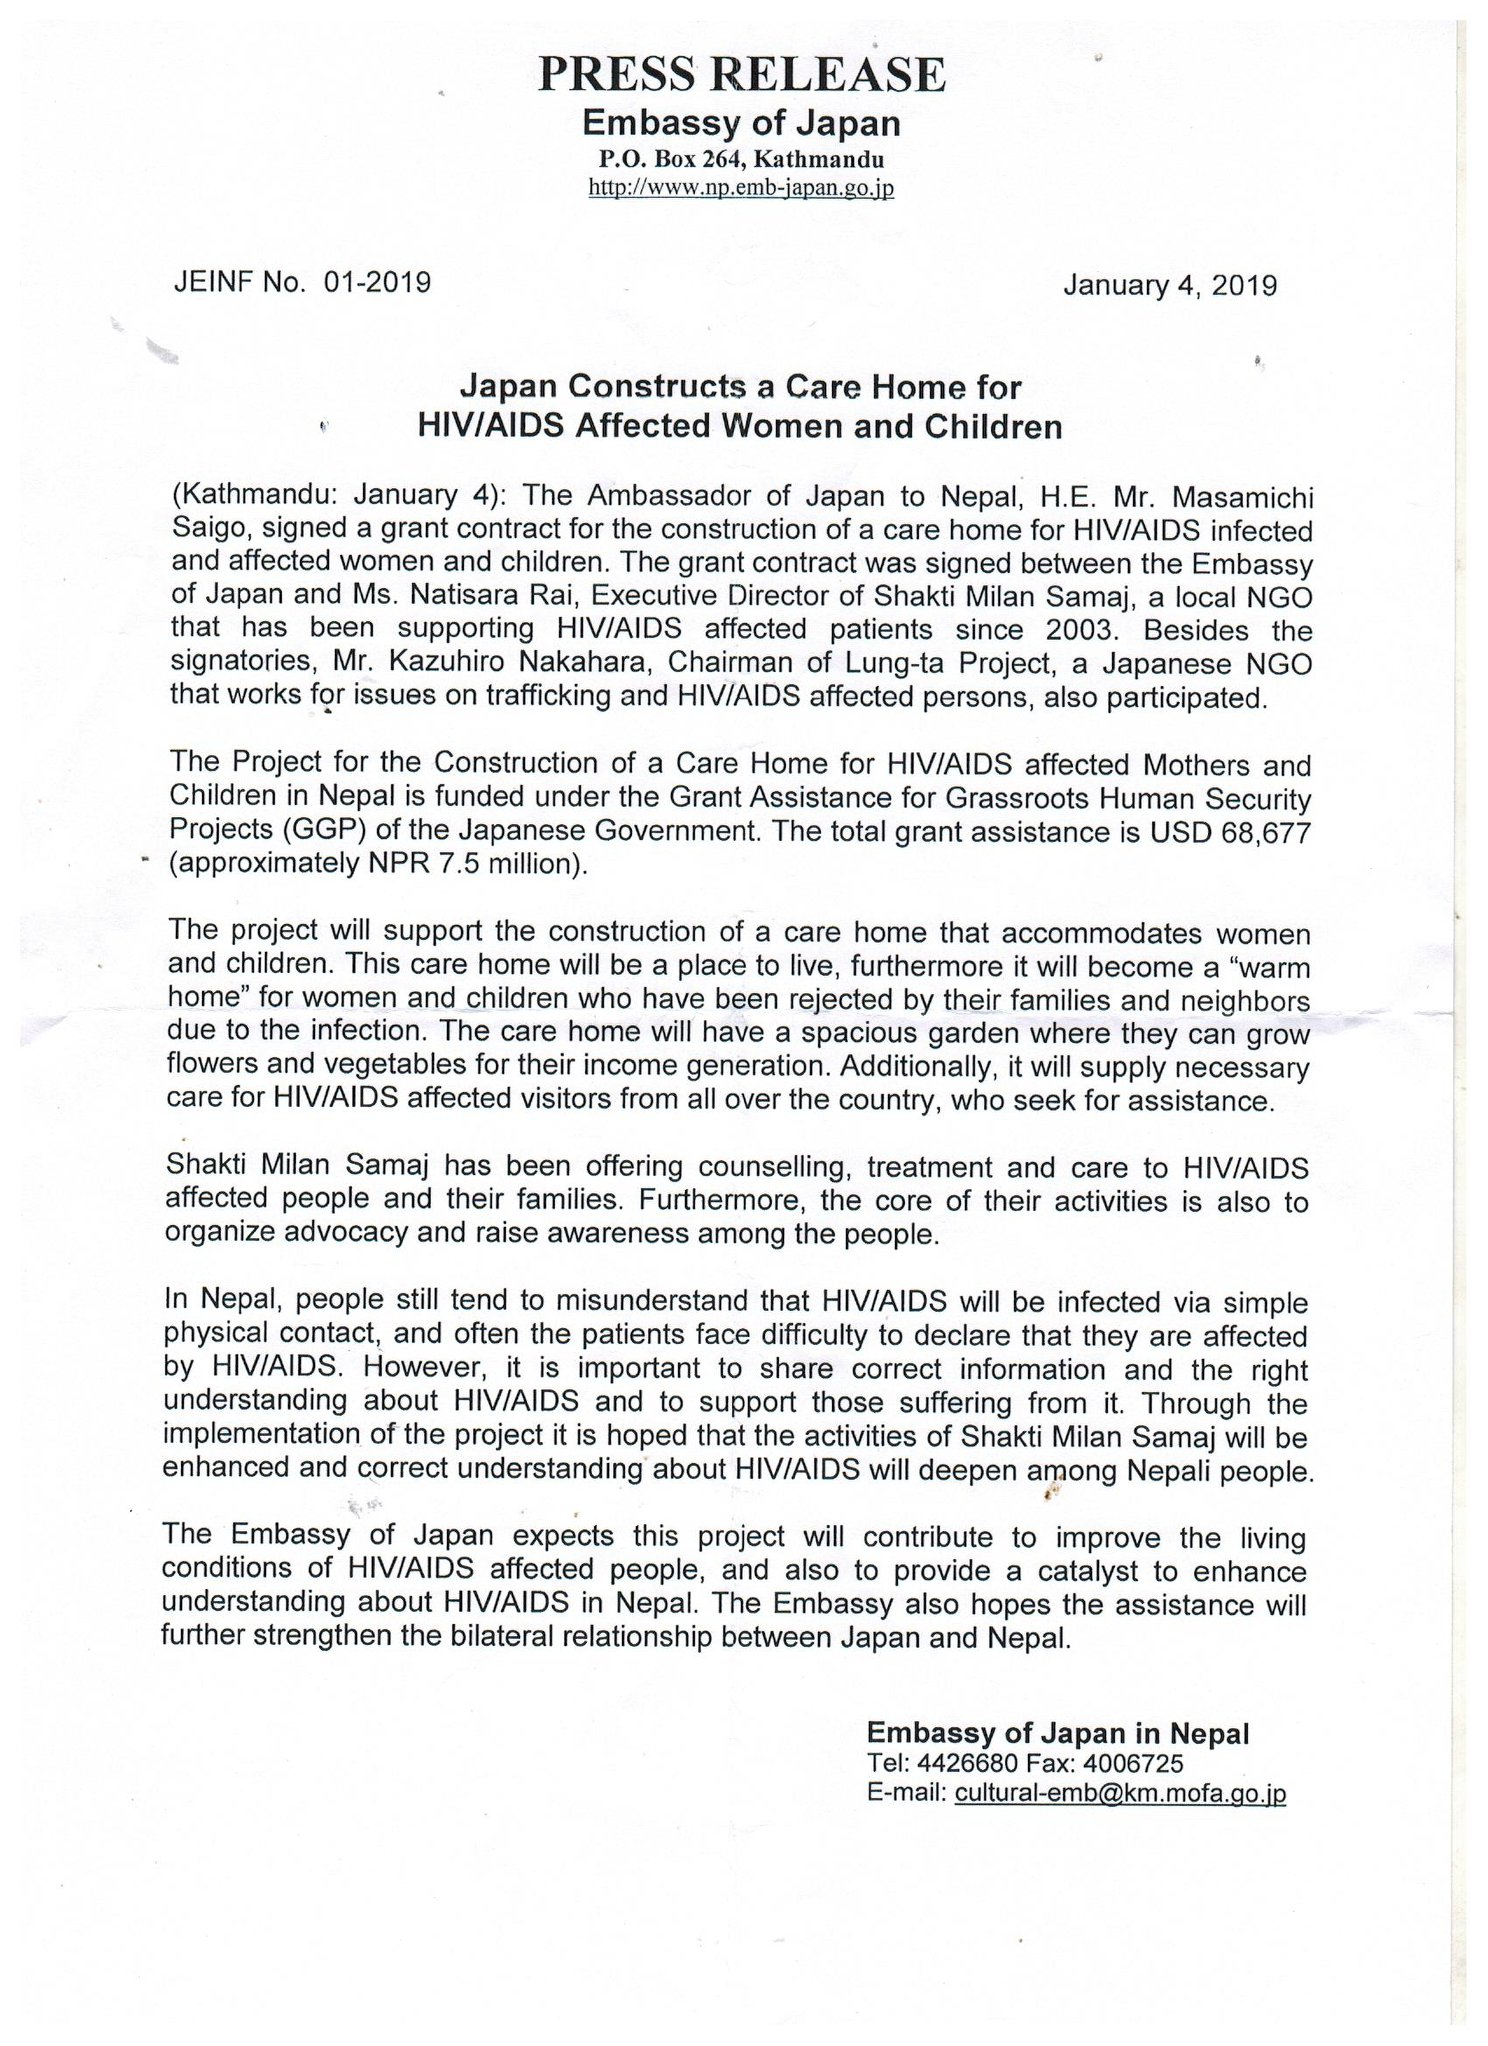 Press Release of Japanese Embassy about Construction of Shelter Homr